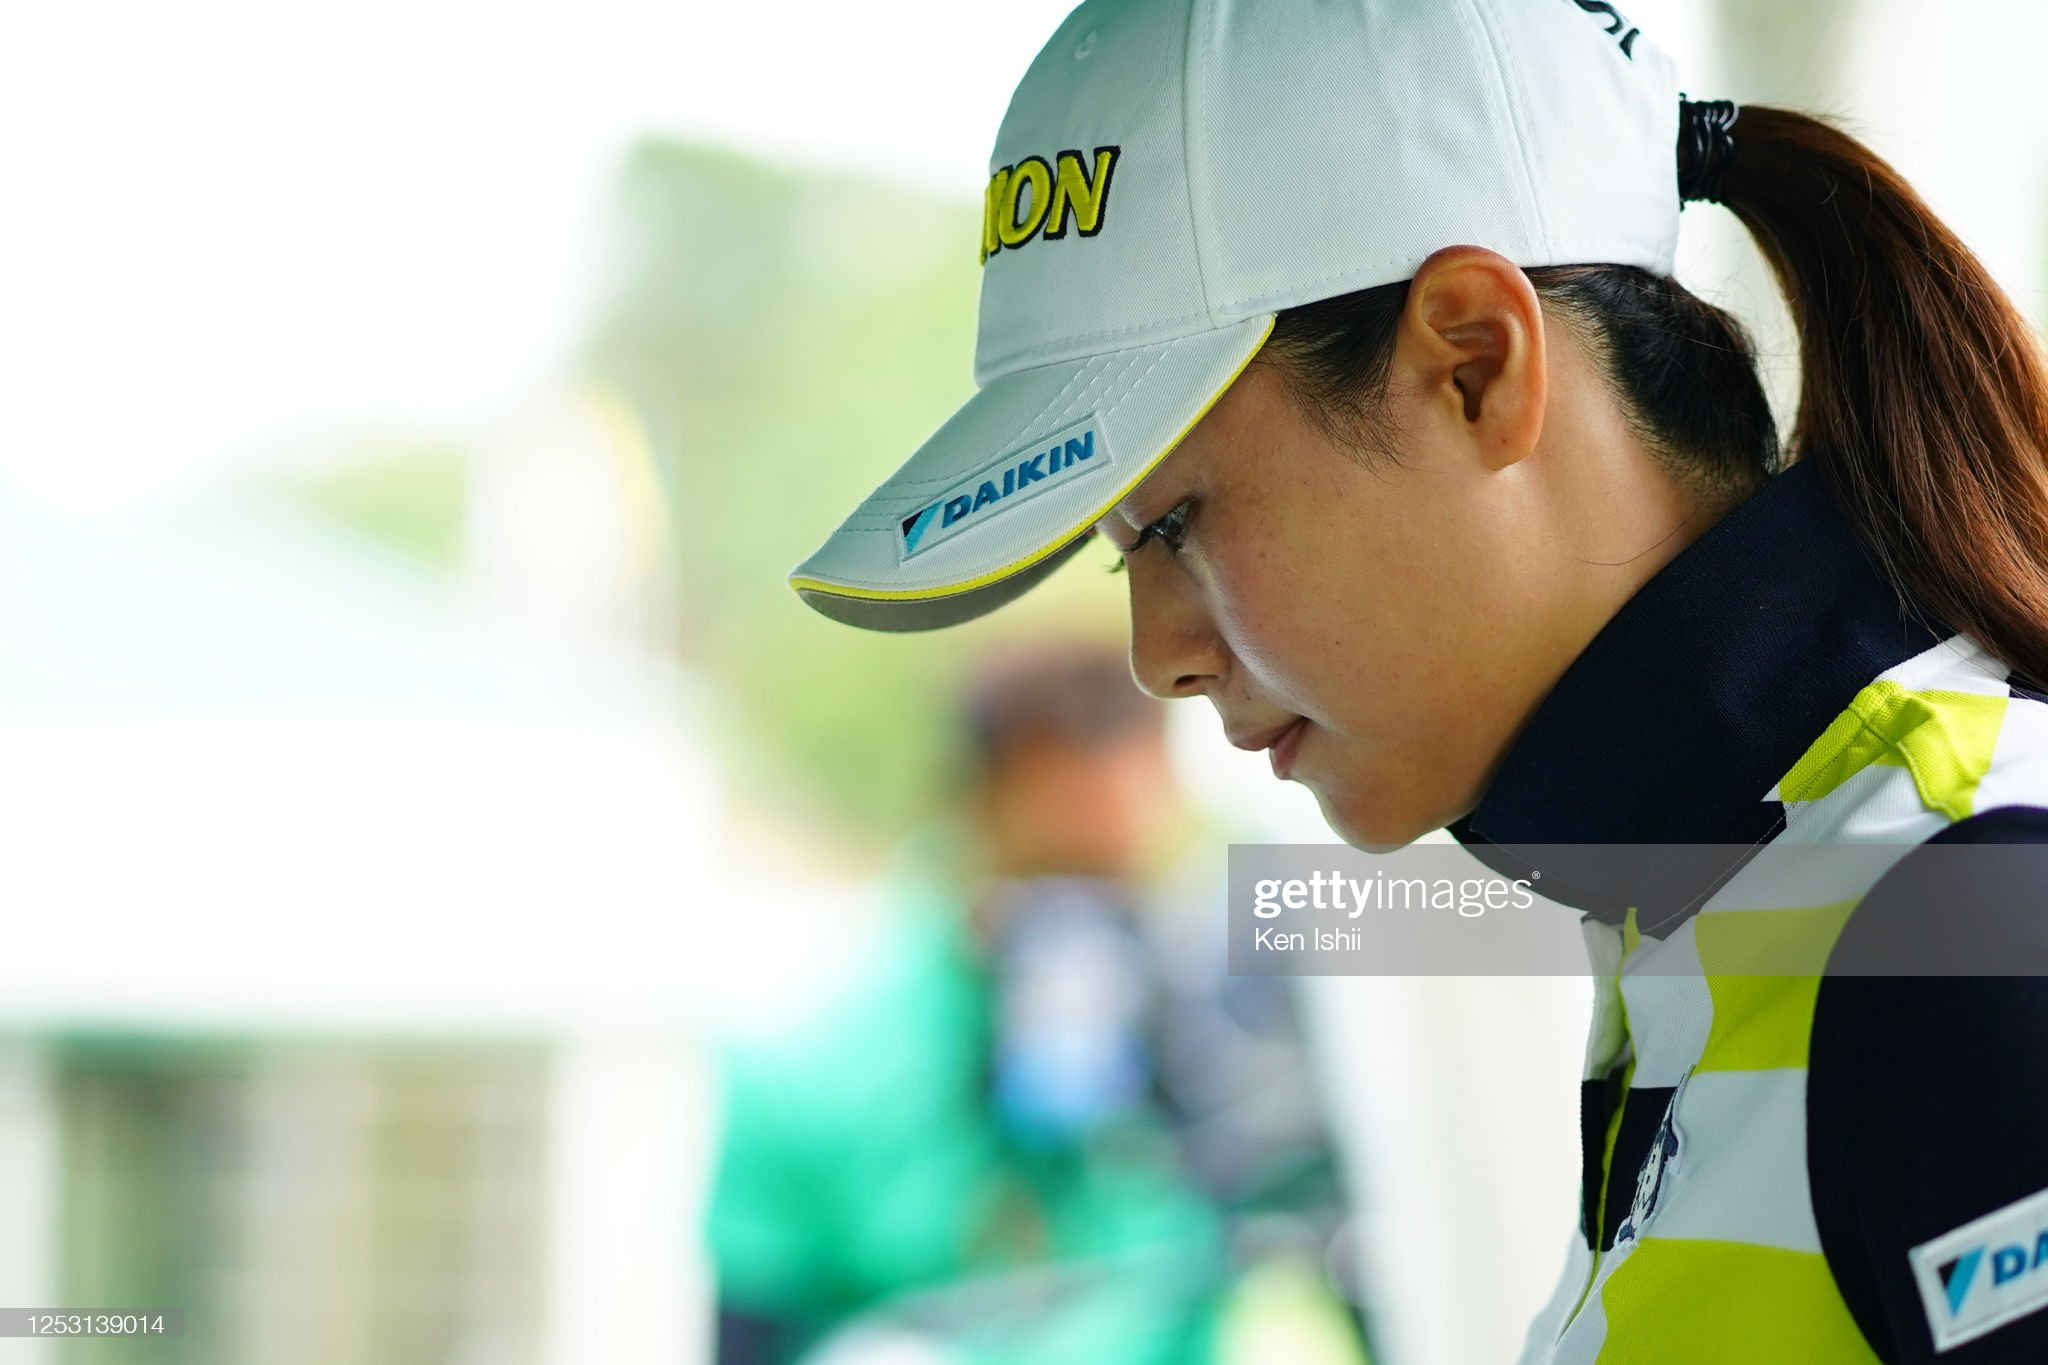 https://media.gettyimages.com/photos/hina-arakaki-of-japan-is-seen-on-the-1st-tee-during-the-final-round-picture-id1253139014?s=2048x2048